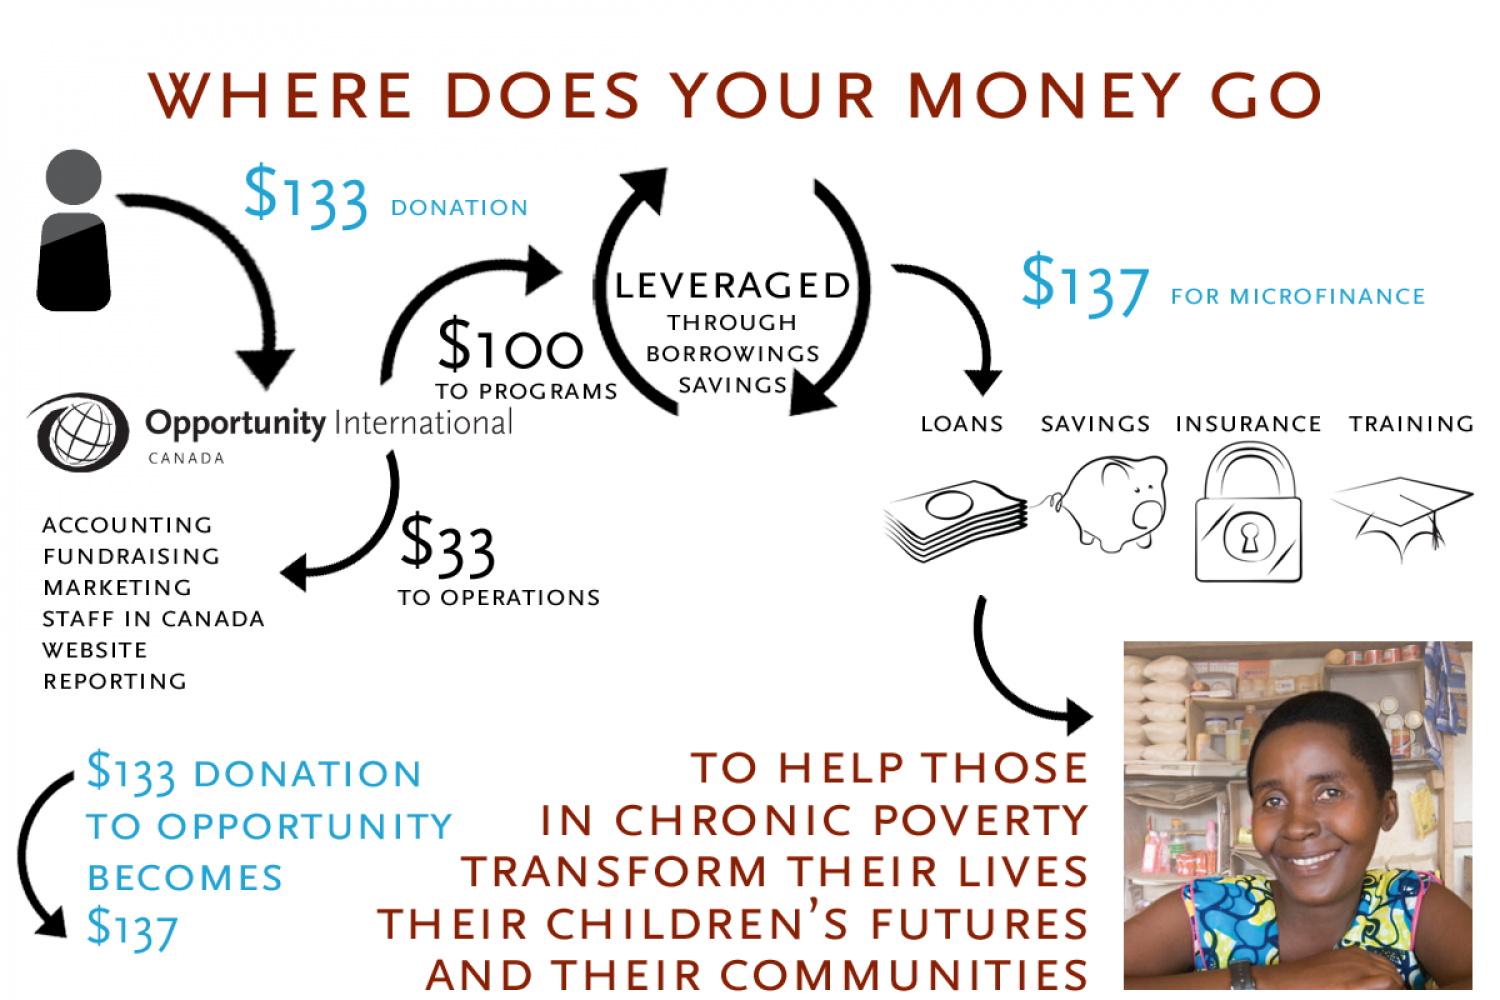 Where Does Your Money Go? Infographic